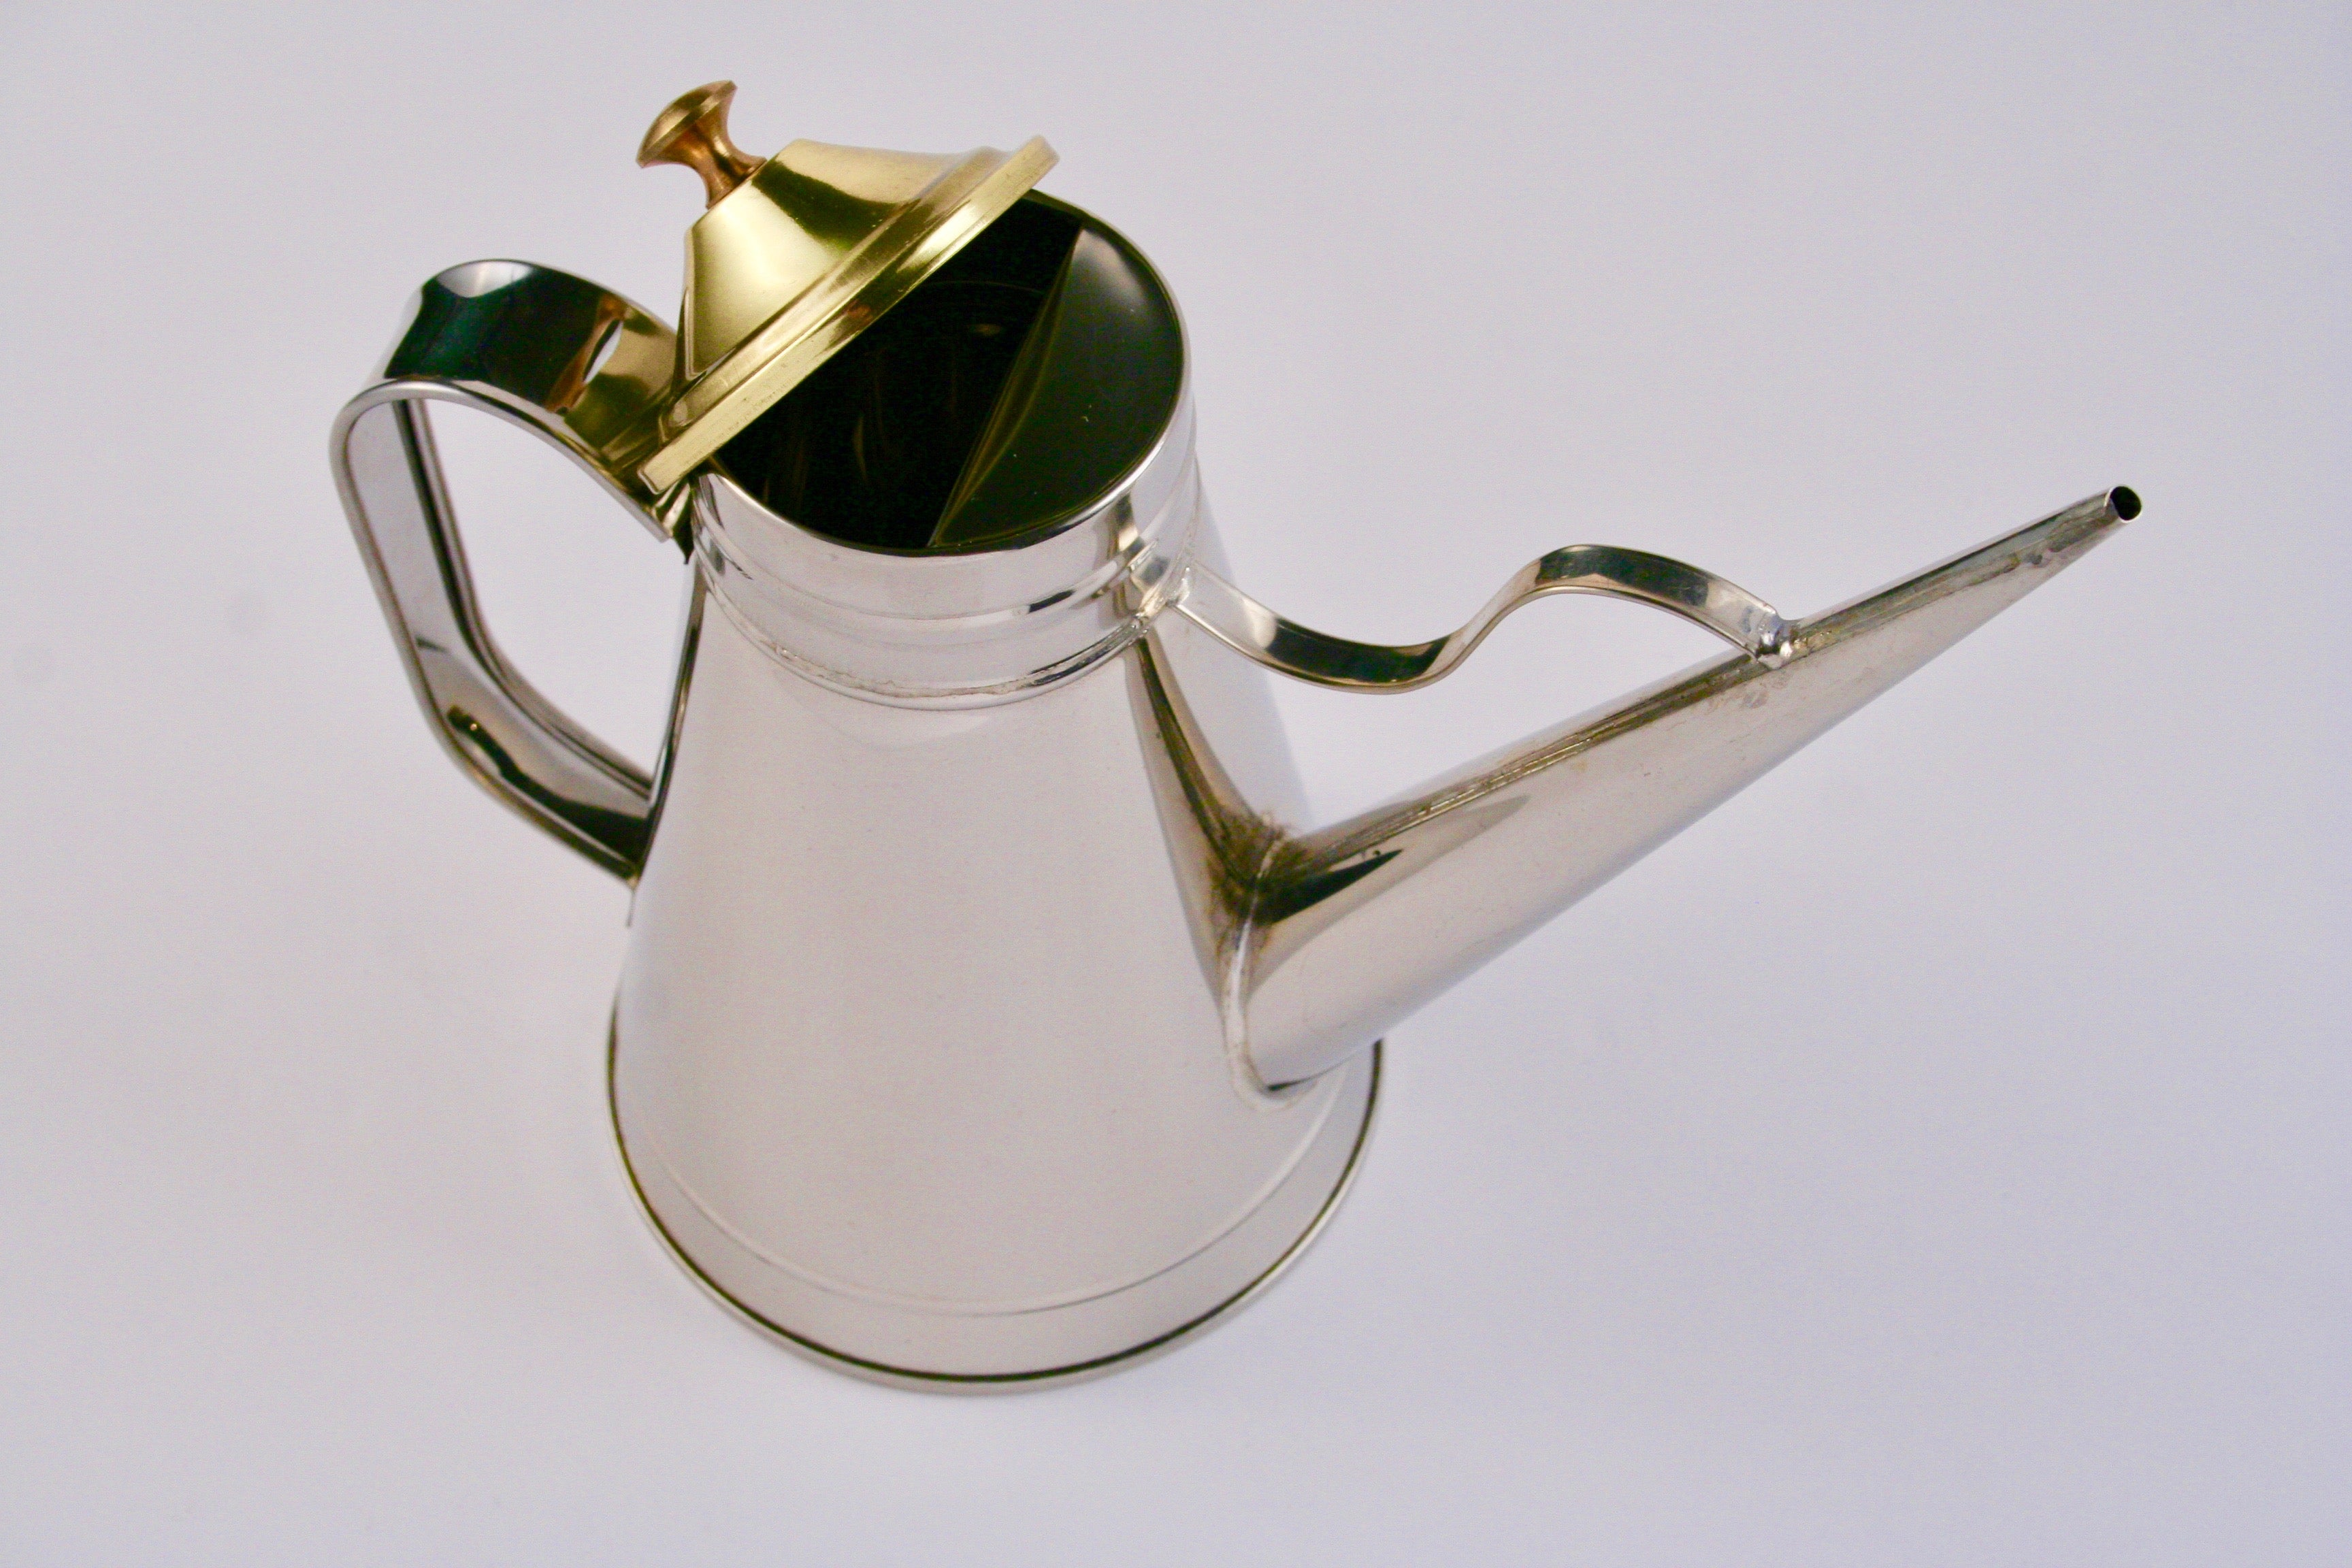 Oil Storage & Pouring Cruet